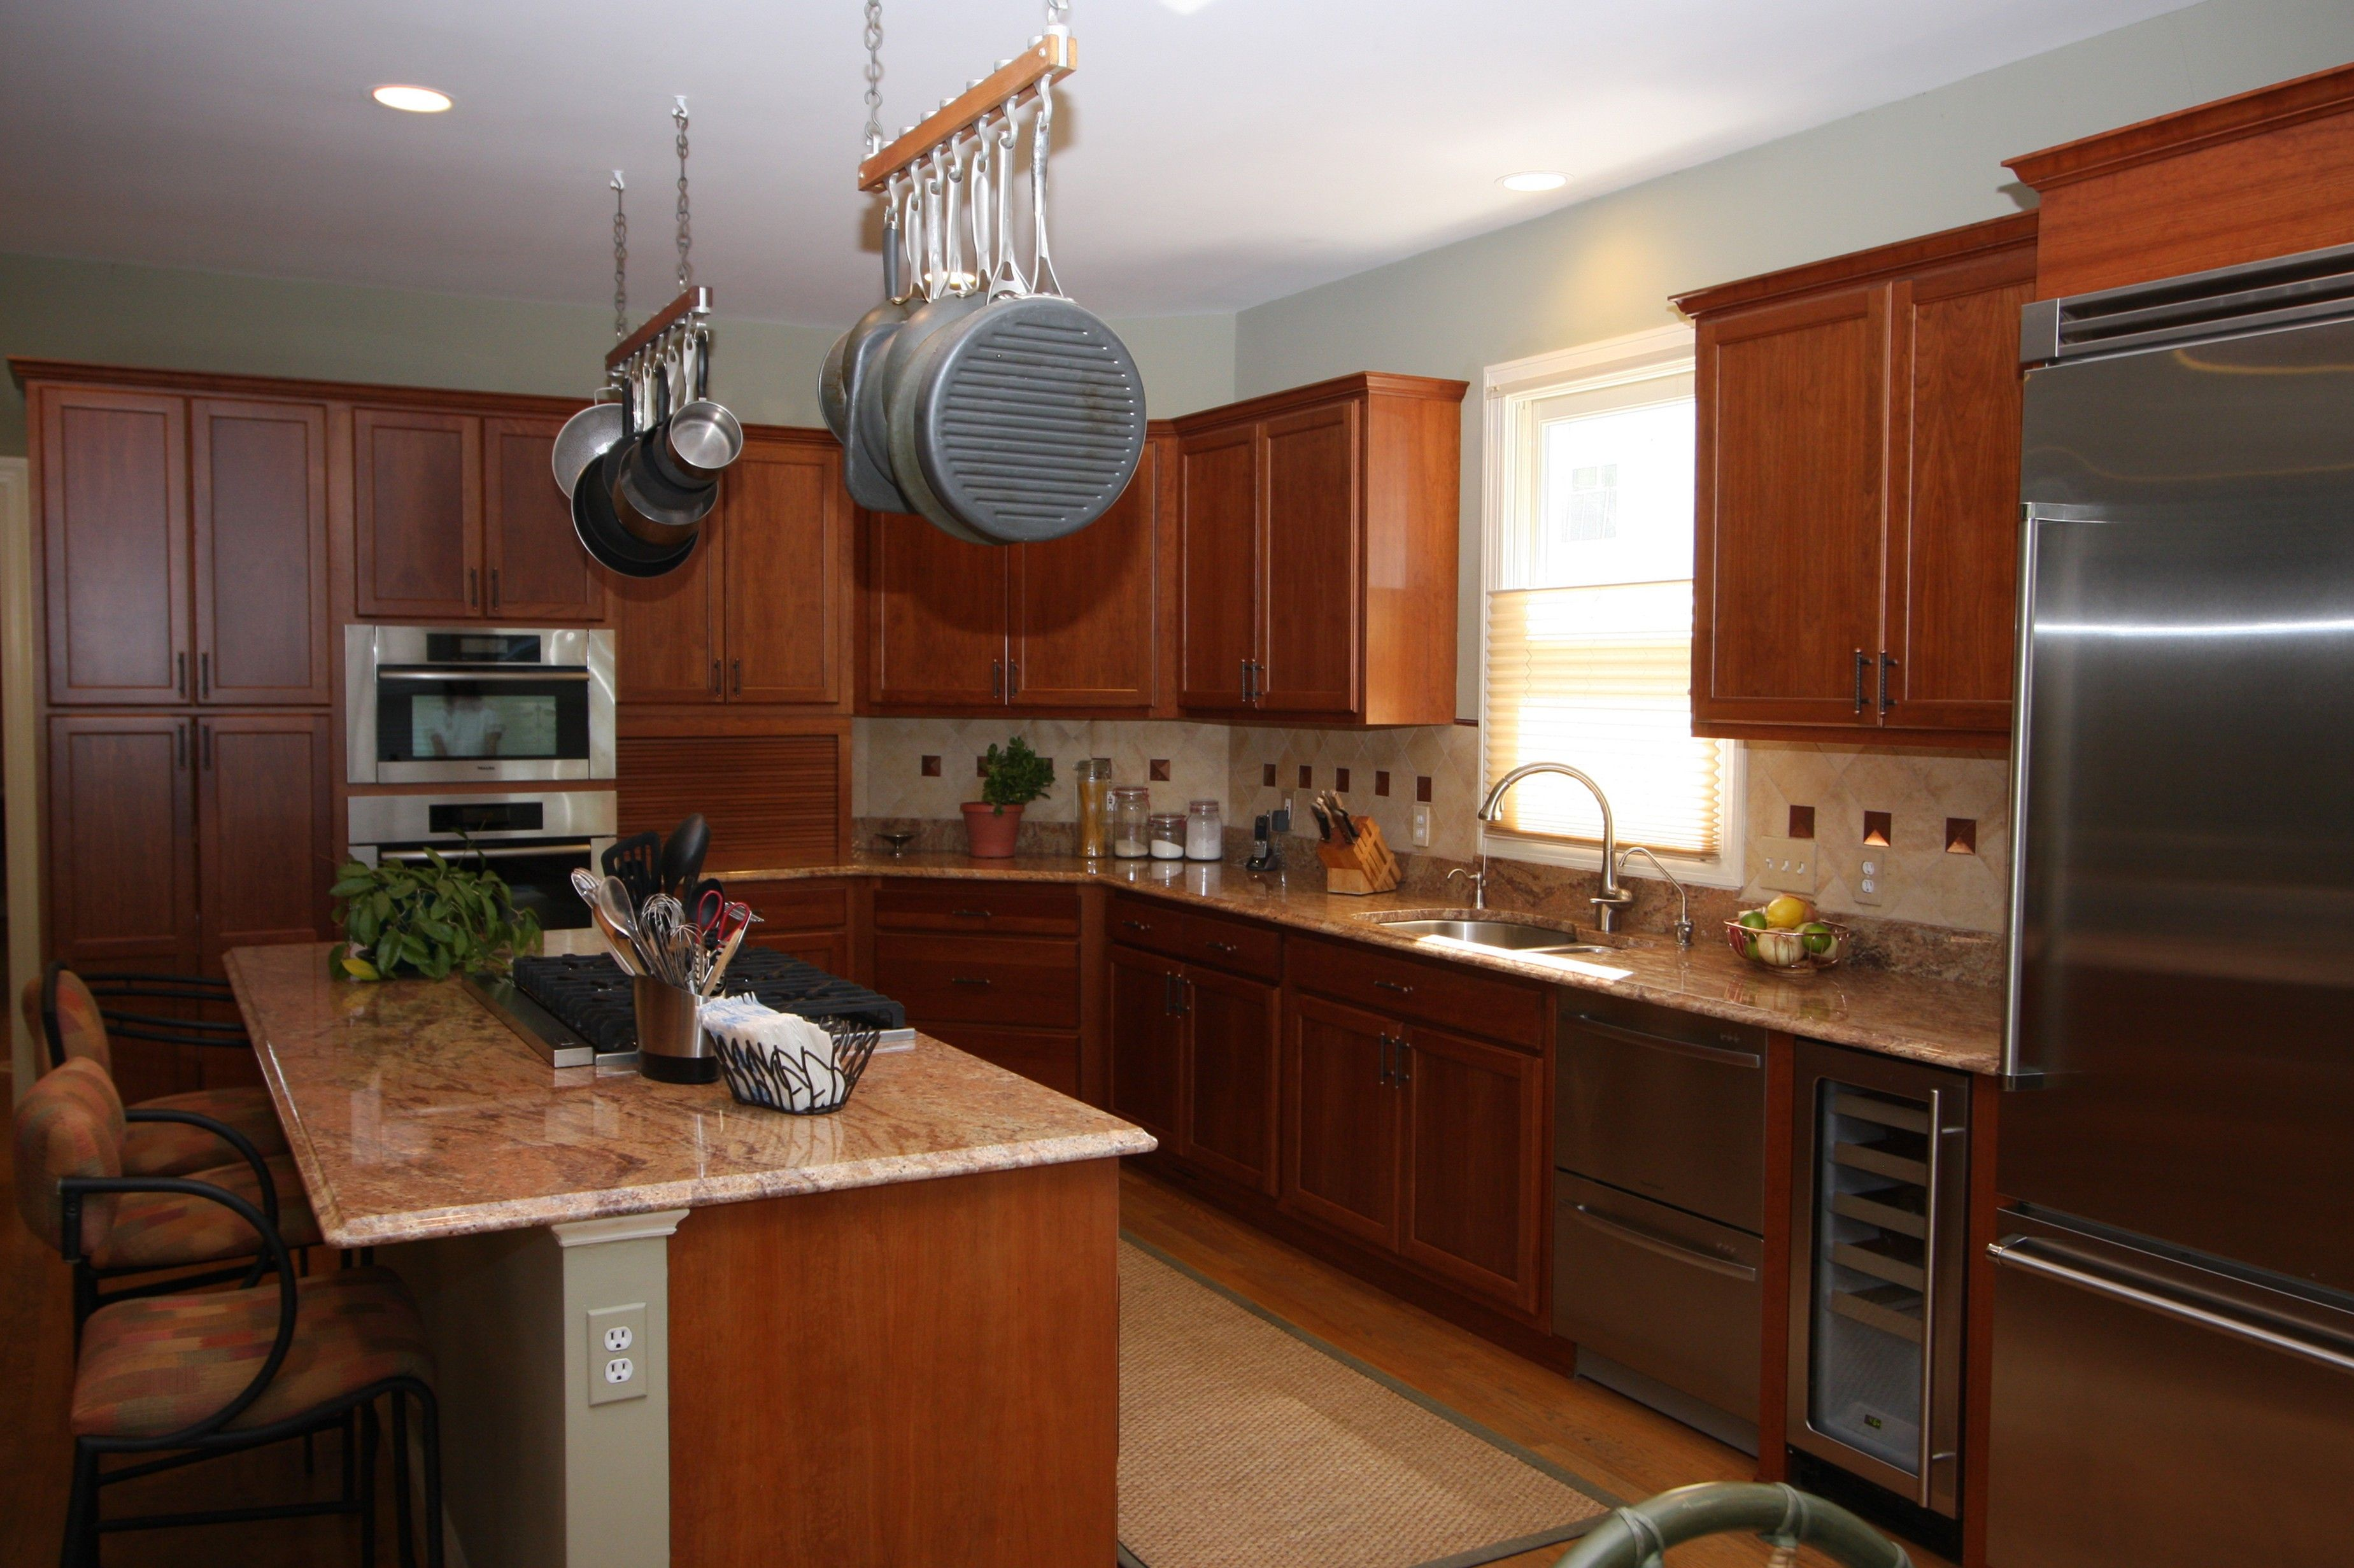 Kitchen Cabinet Refacing Maryland With a beautiful #kitchen #refacing project like this, your home